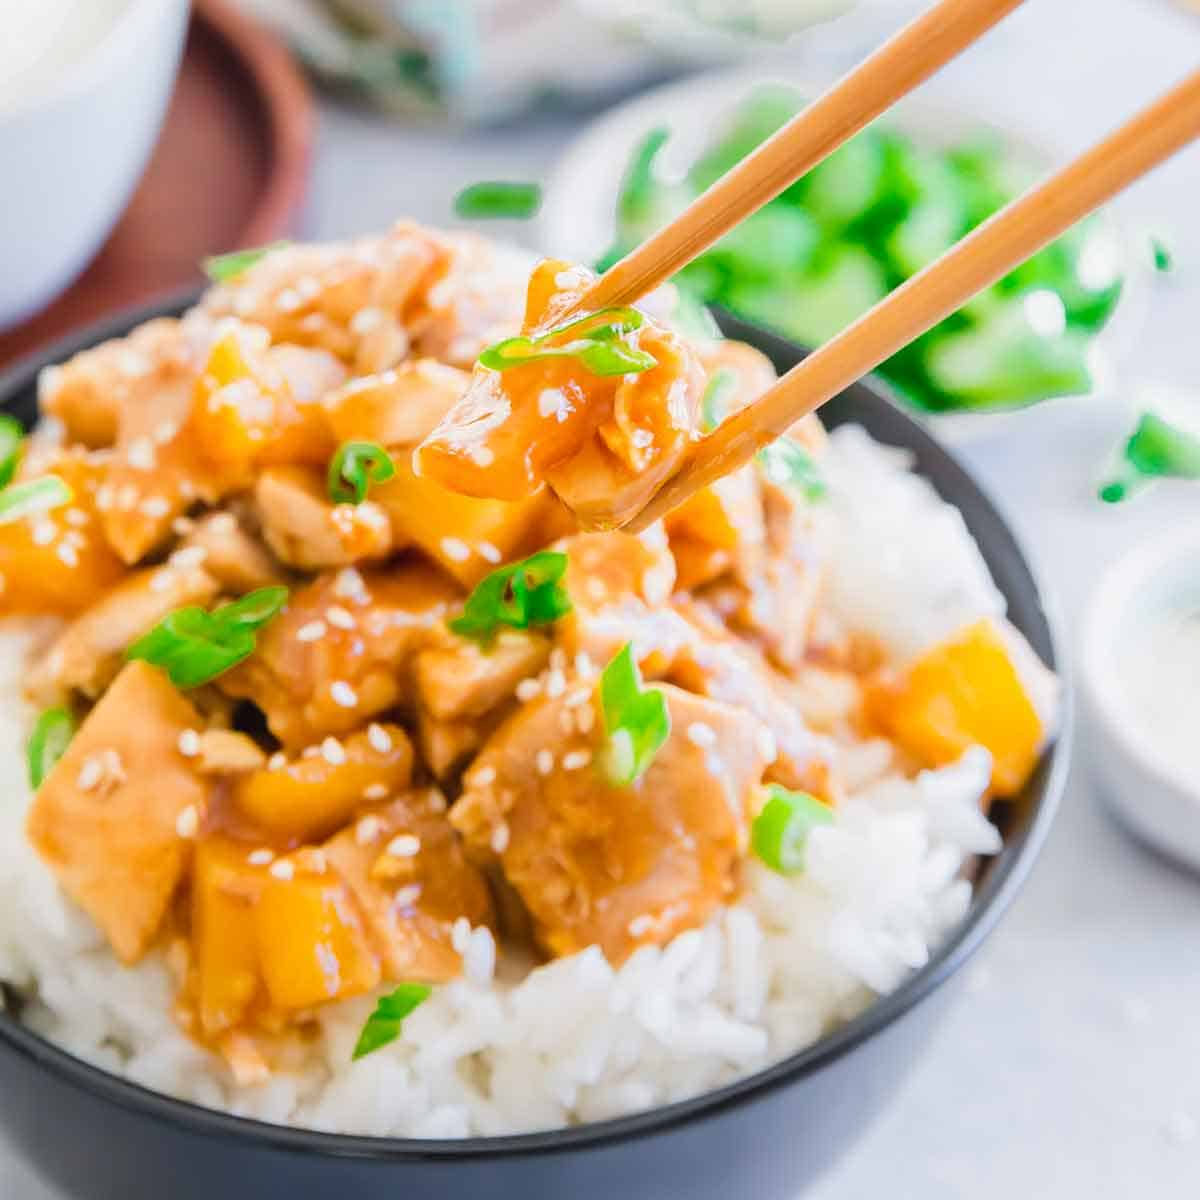 Crockpot honey garlic chicken with pineapple in a sticky, sweet and savory sauce.